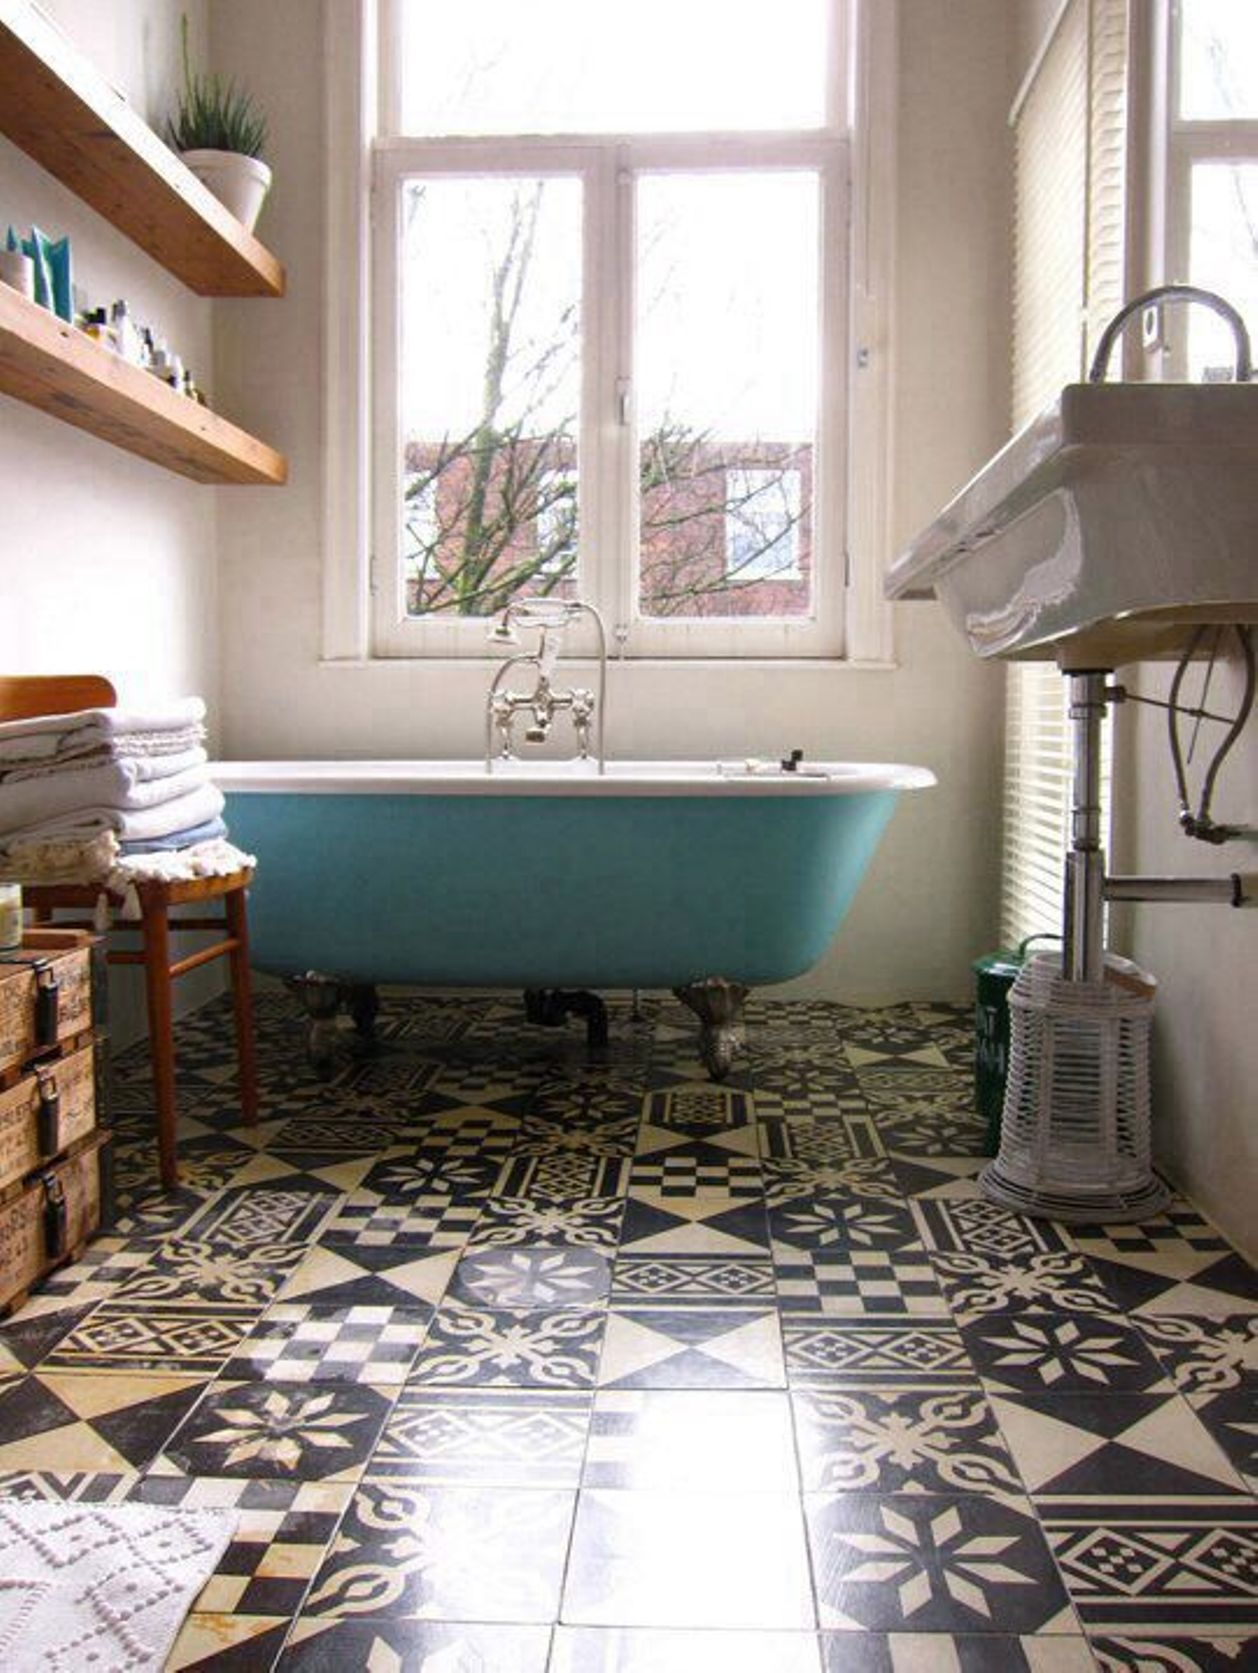 bathroom-beautiful-bathroom-design-ideas-for-small-space-with-blue-tub-and-woode-shelves-vintage-bathroom-tile-patterns-ideas1